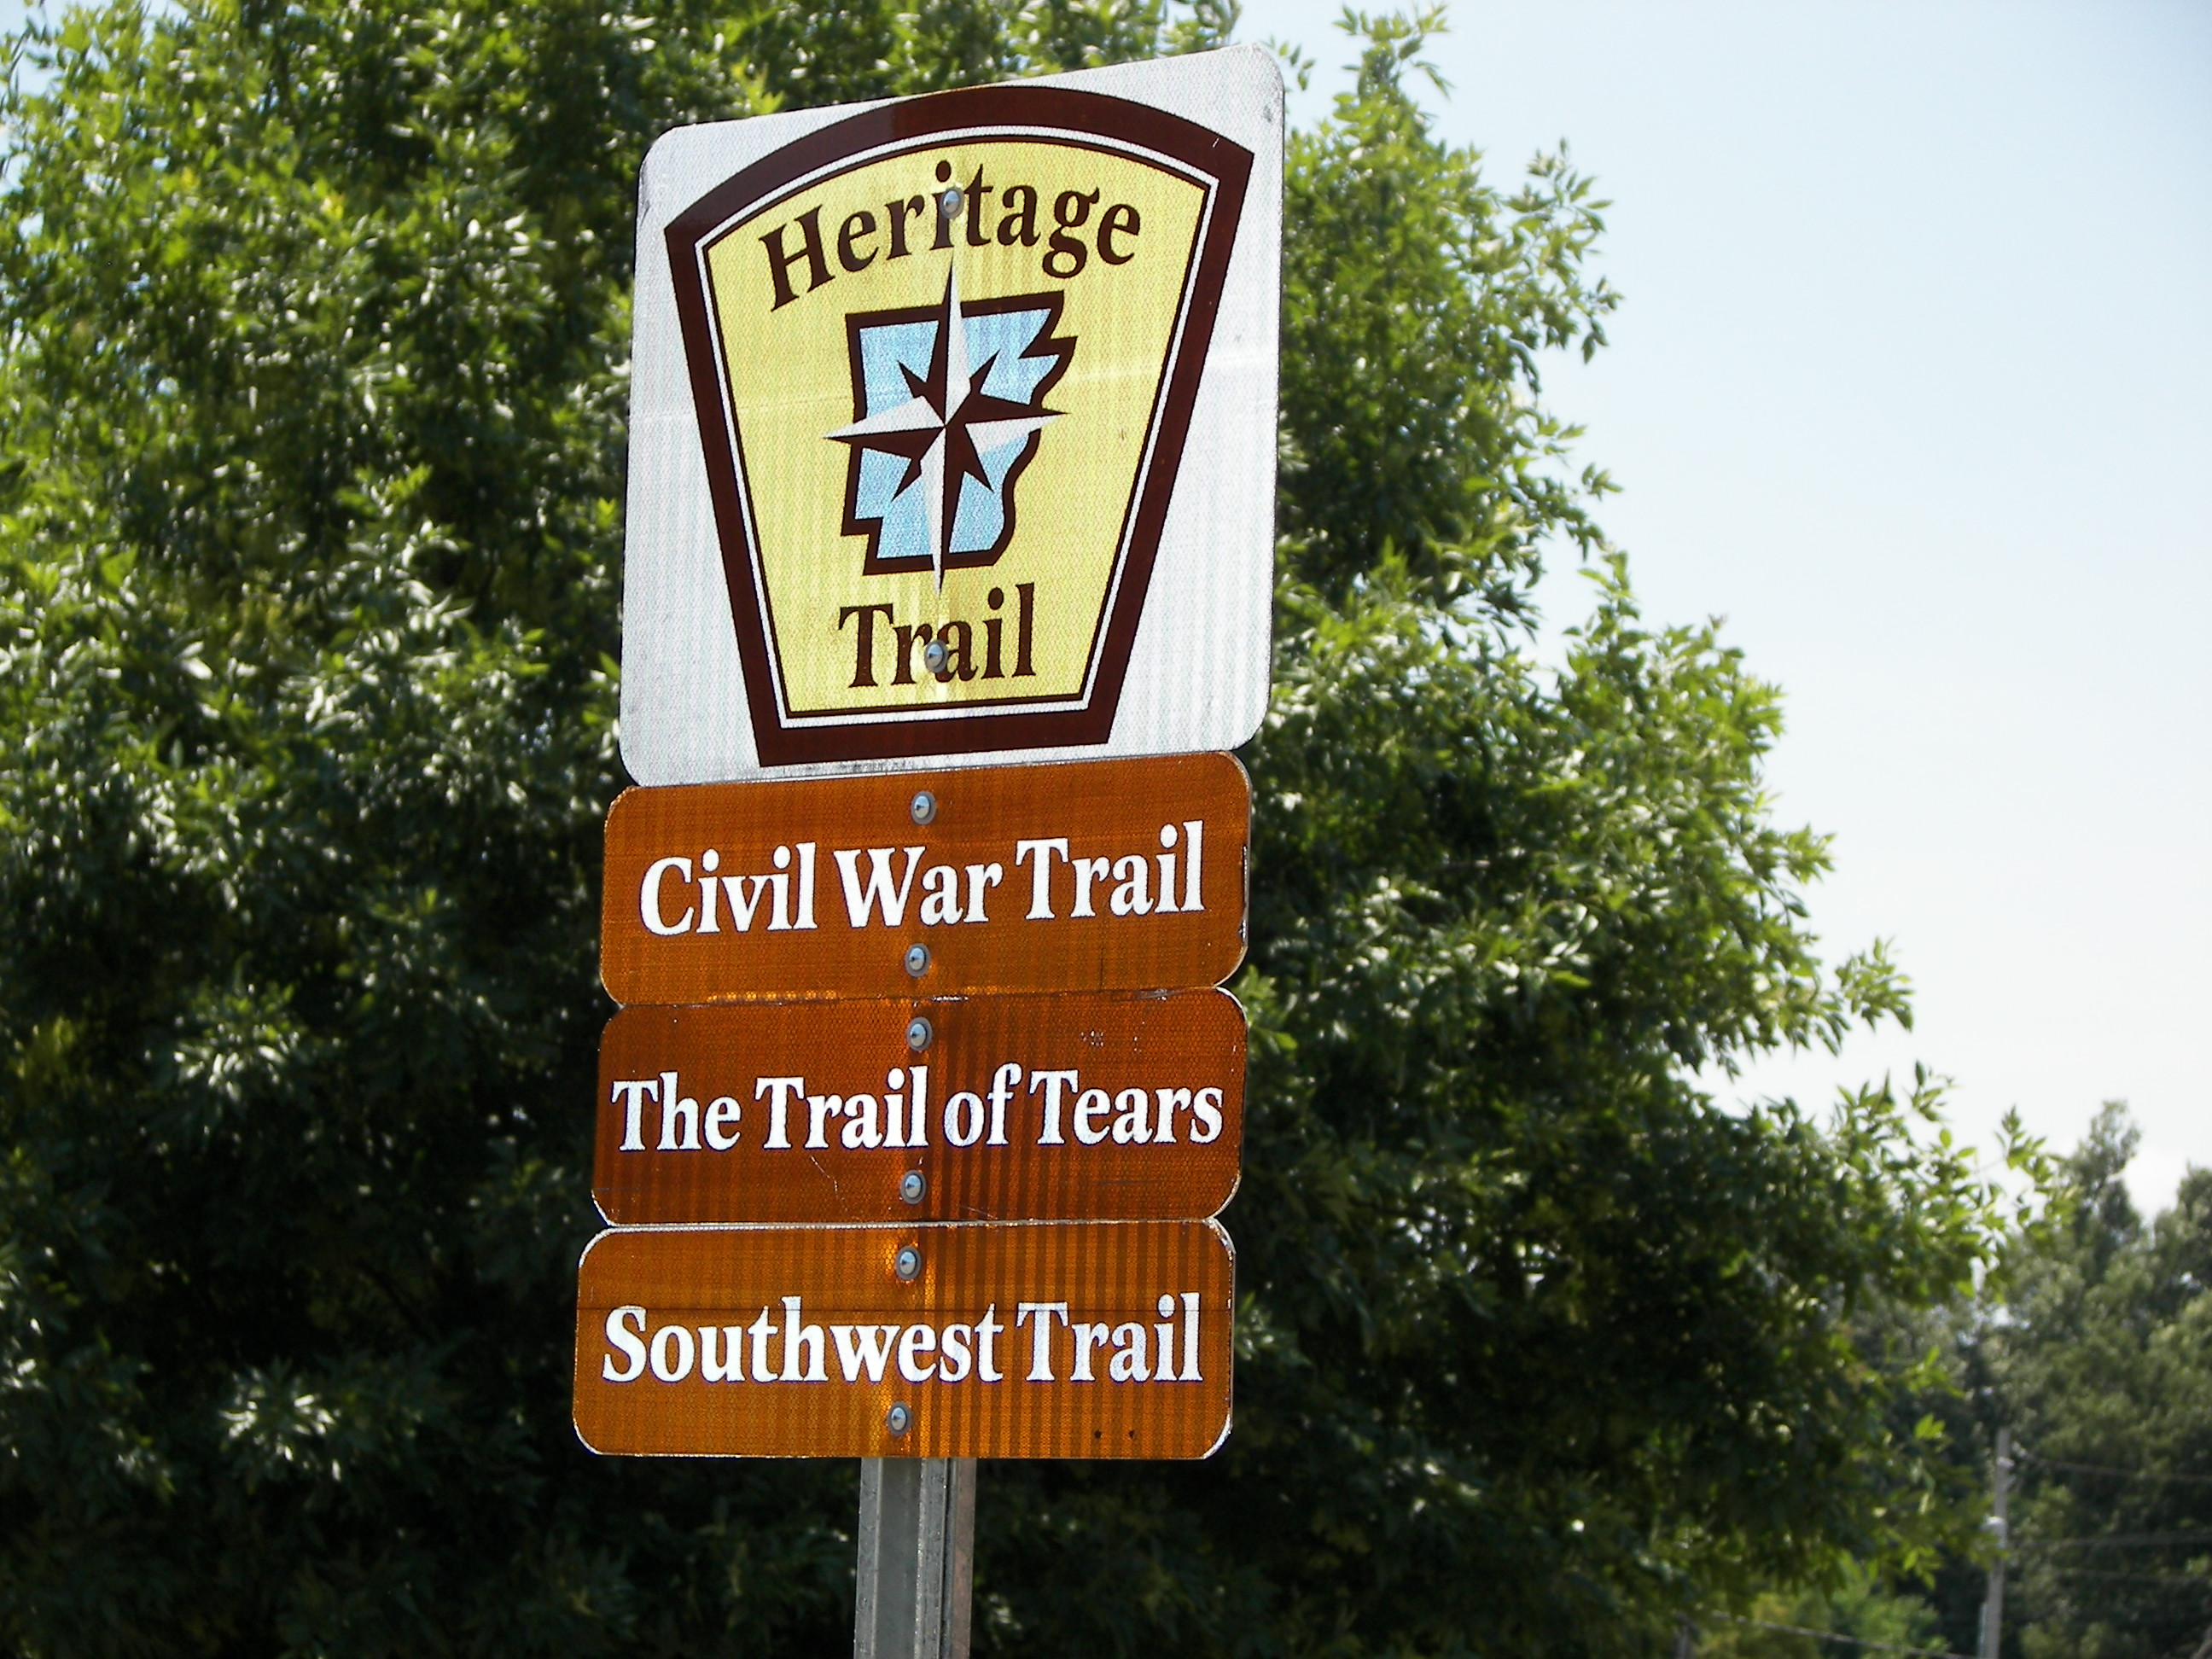 Arkansas Heritage Trail